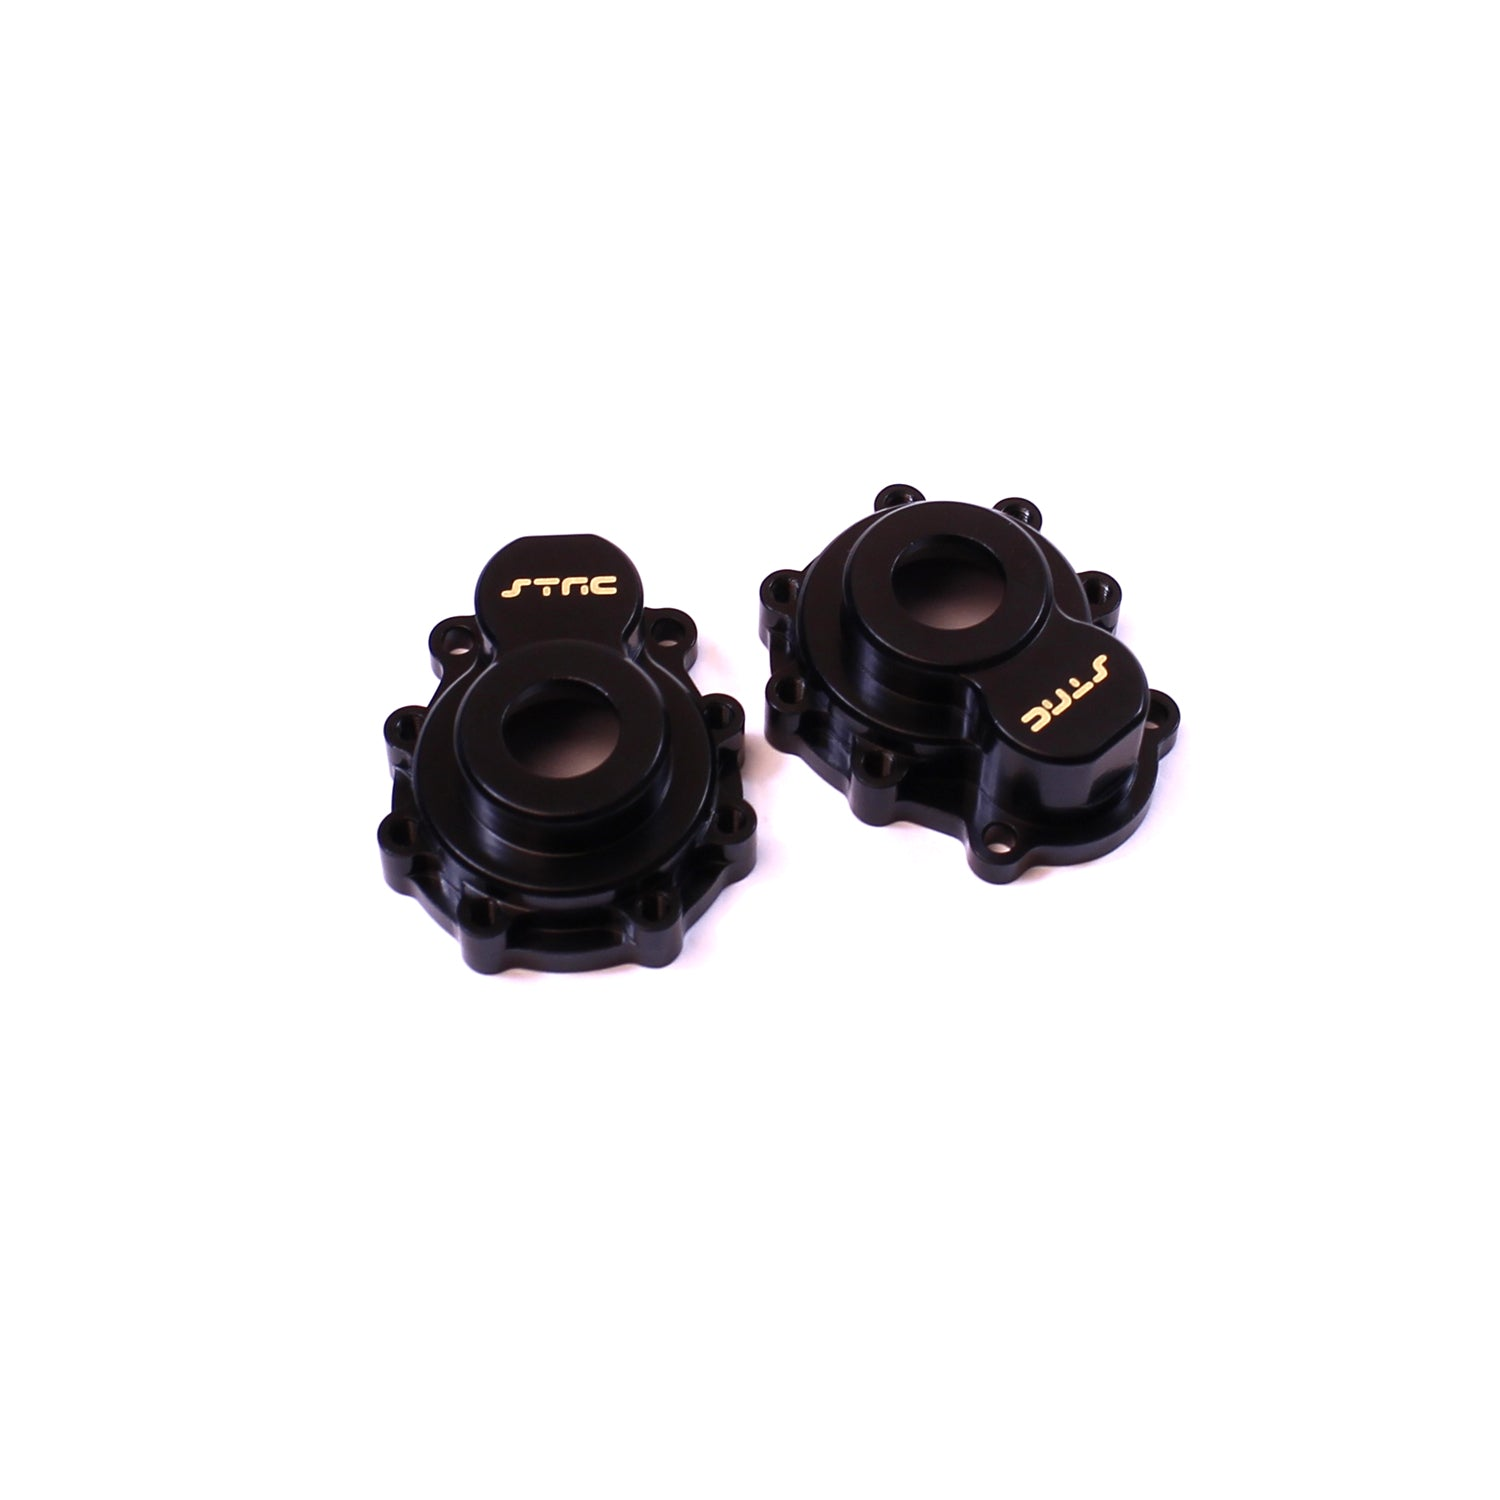 ST Racing Concepts CNC Machined Brass Outer Portal Drive Housing, Black, for Traxxas TRX-4, (1 pair) STRST8251B